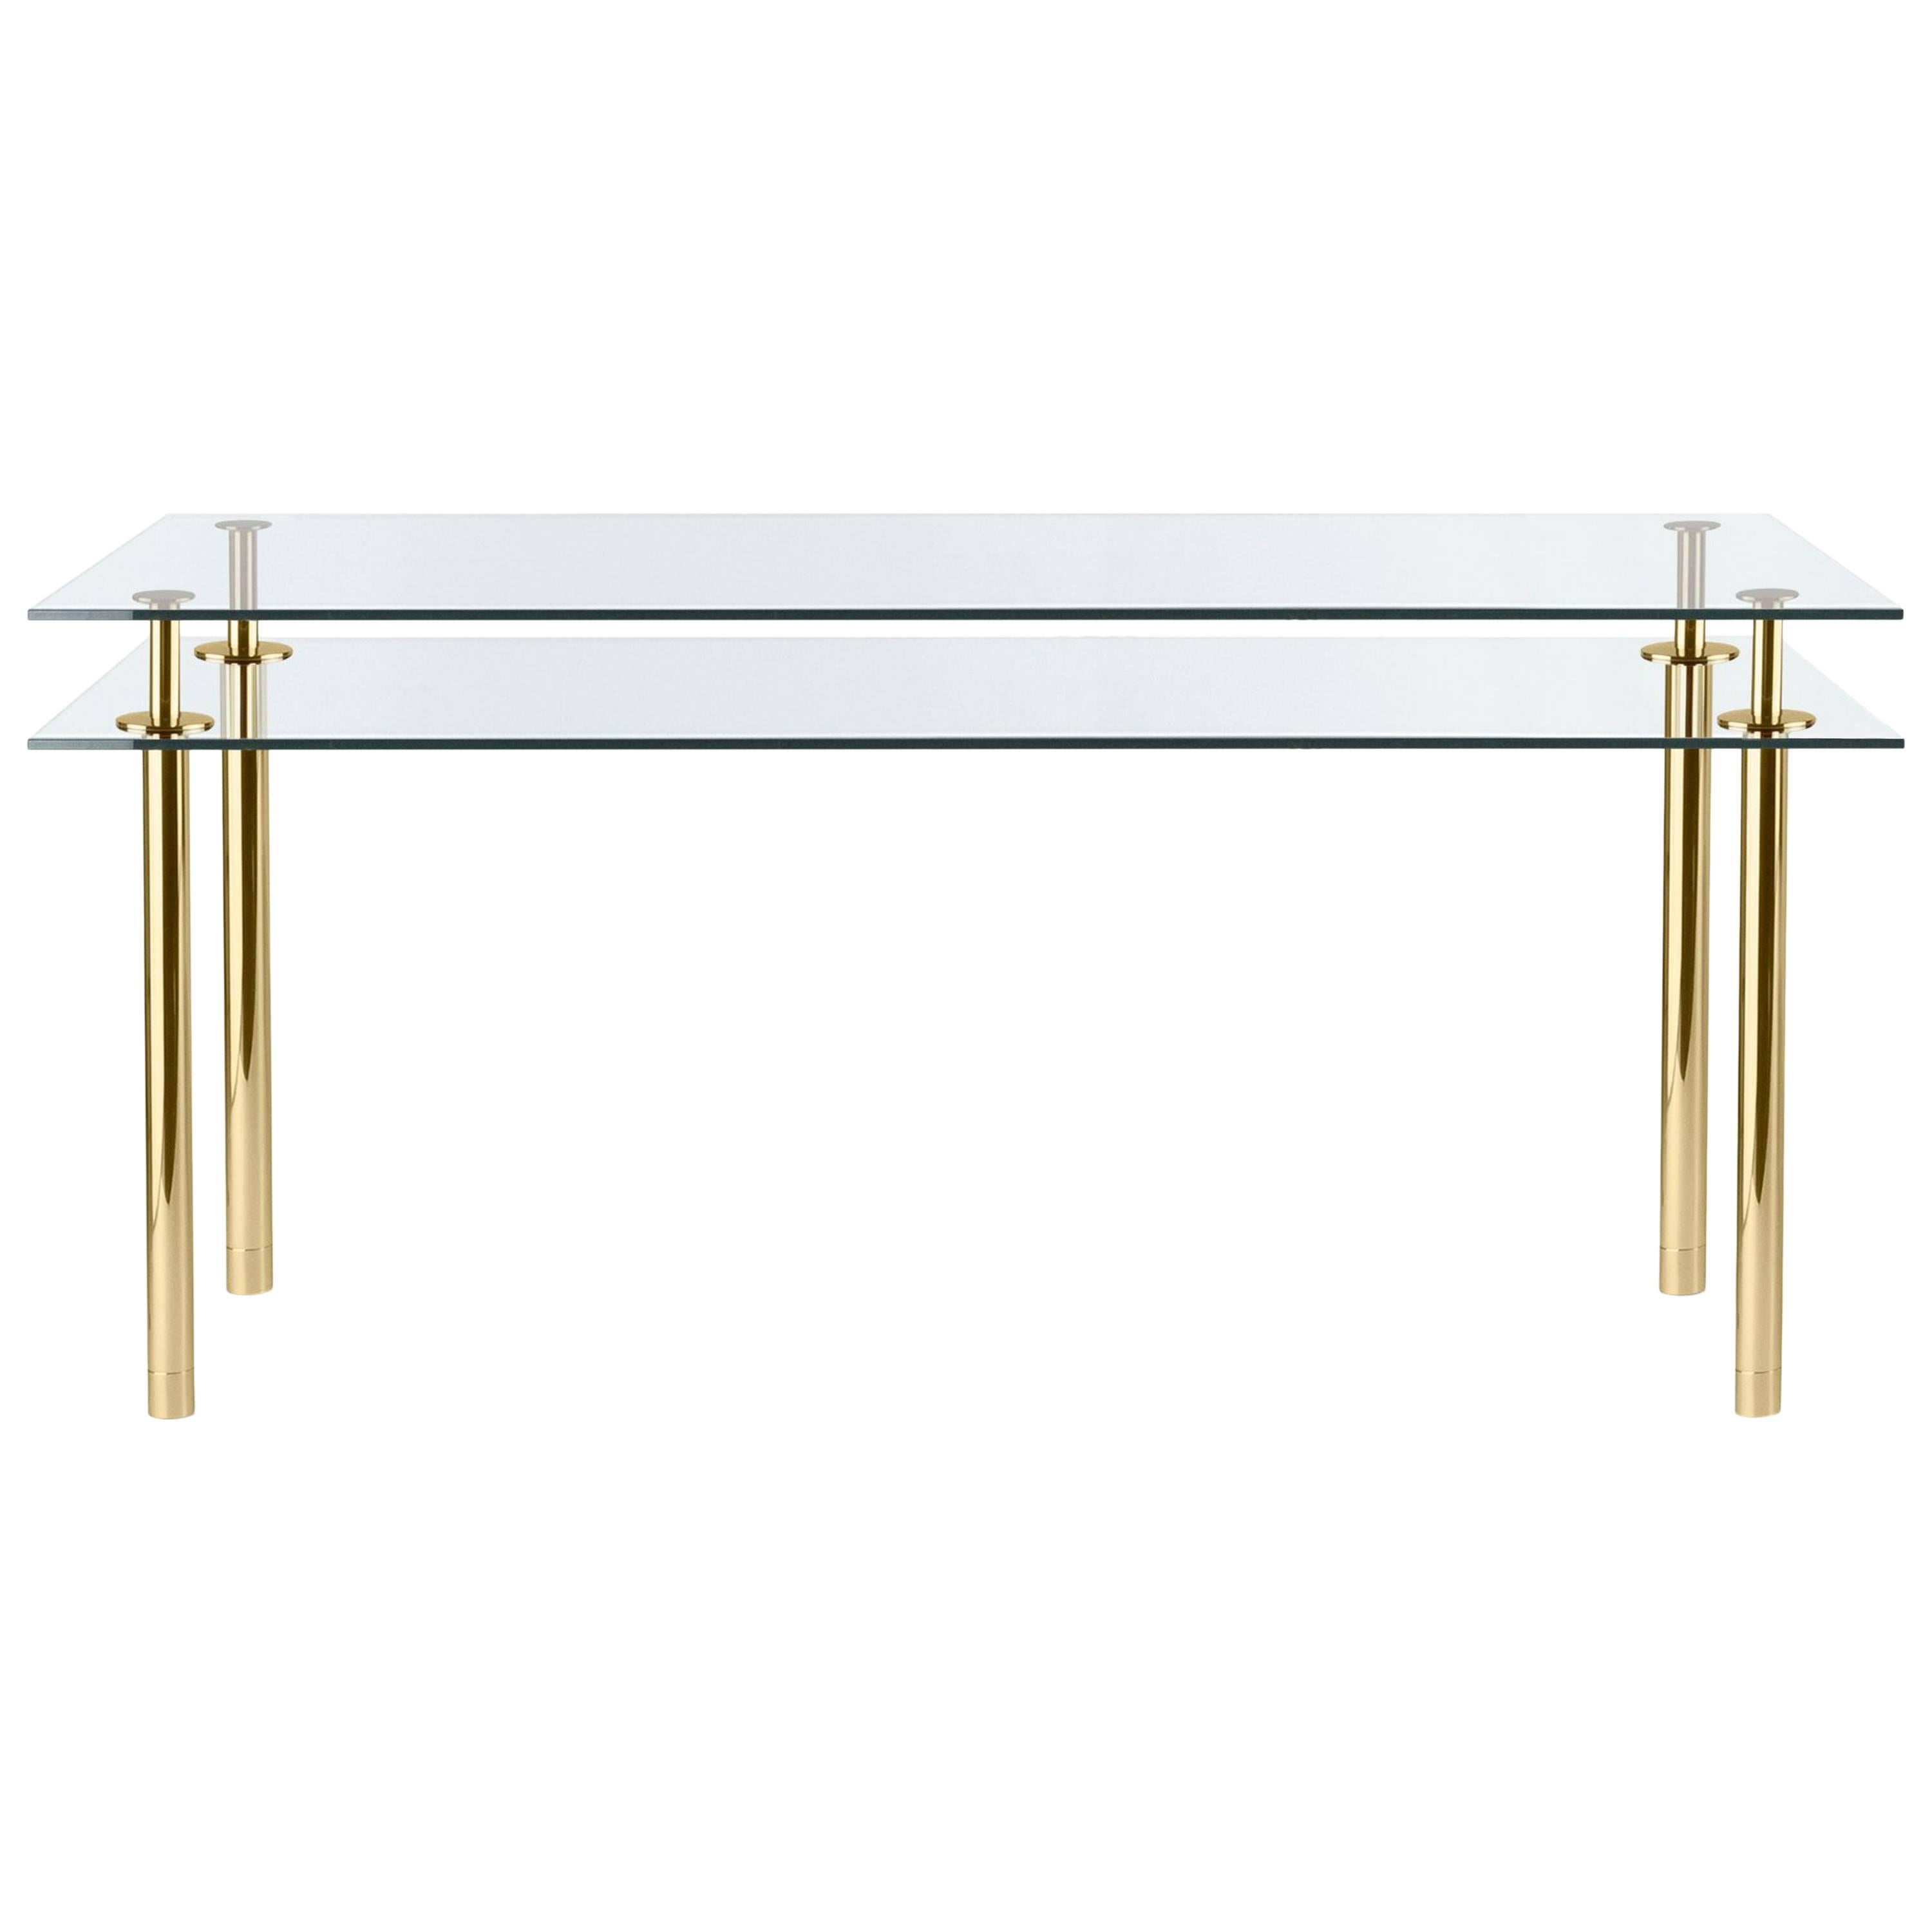 Ghidini 1961 Legs Medium Rectangular Table in Crystal and Polished Brass